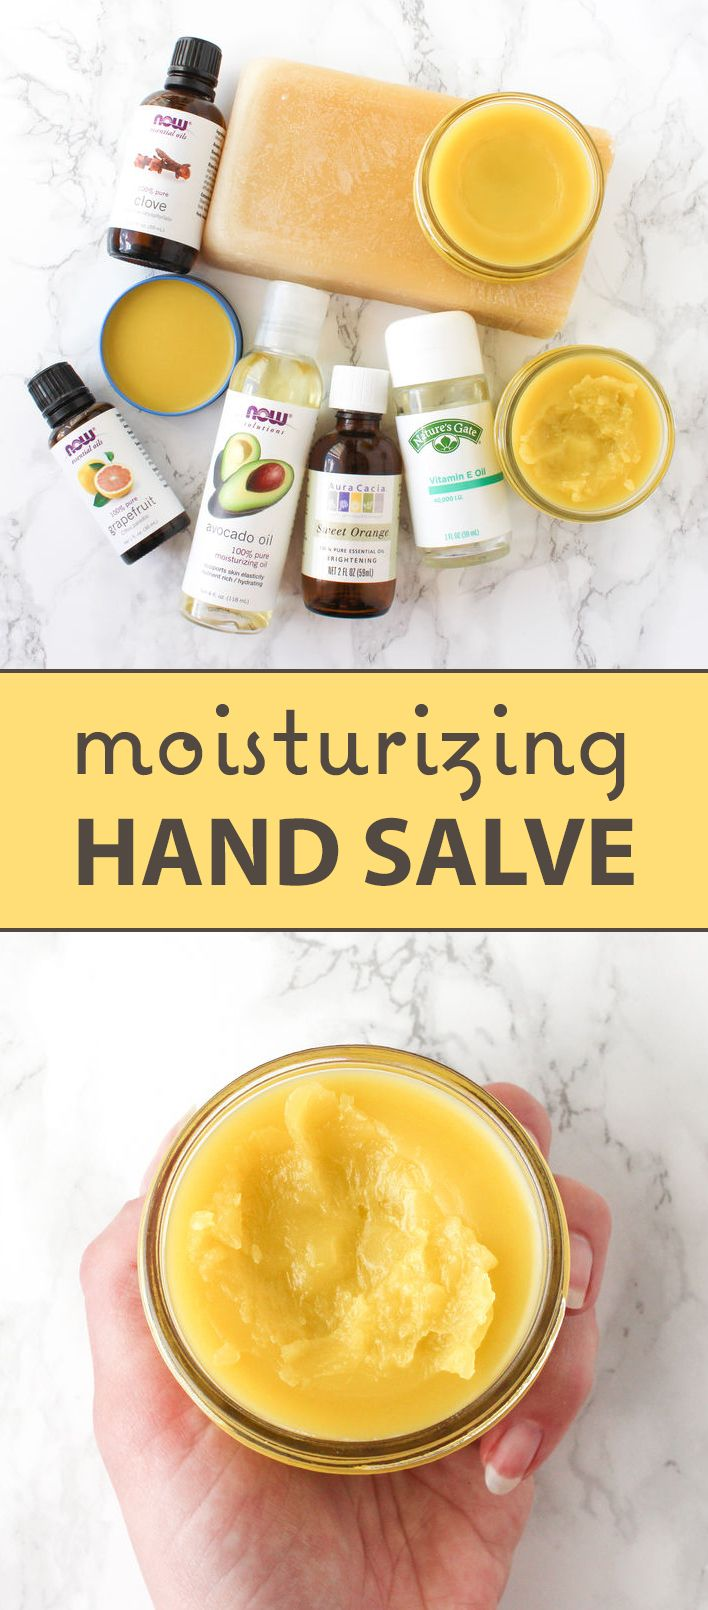 Nourish and moisturize dry hands.